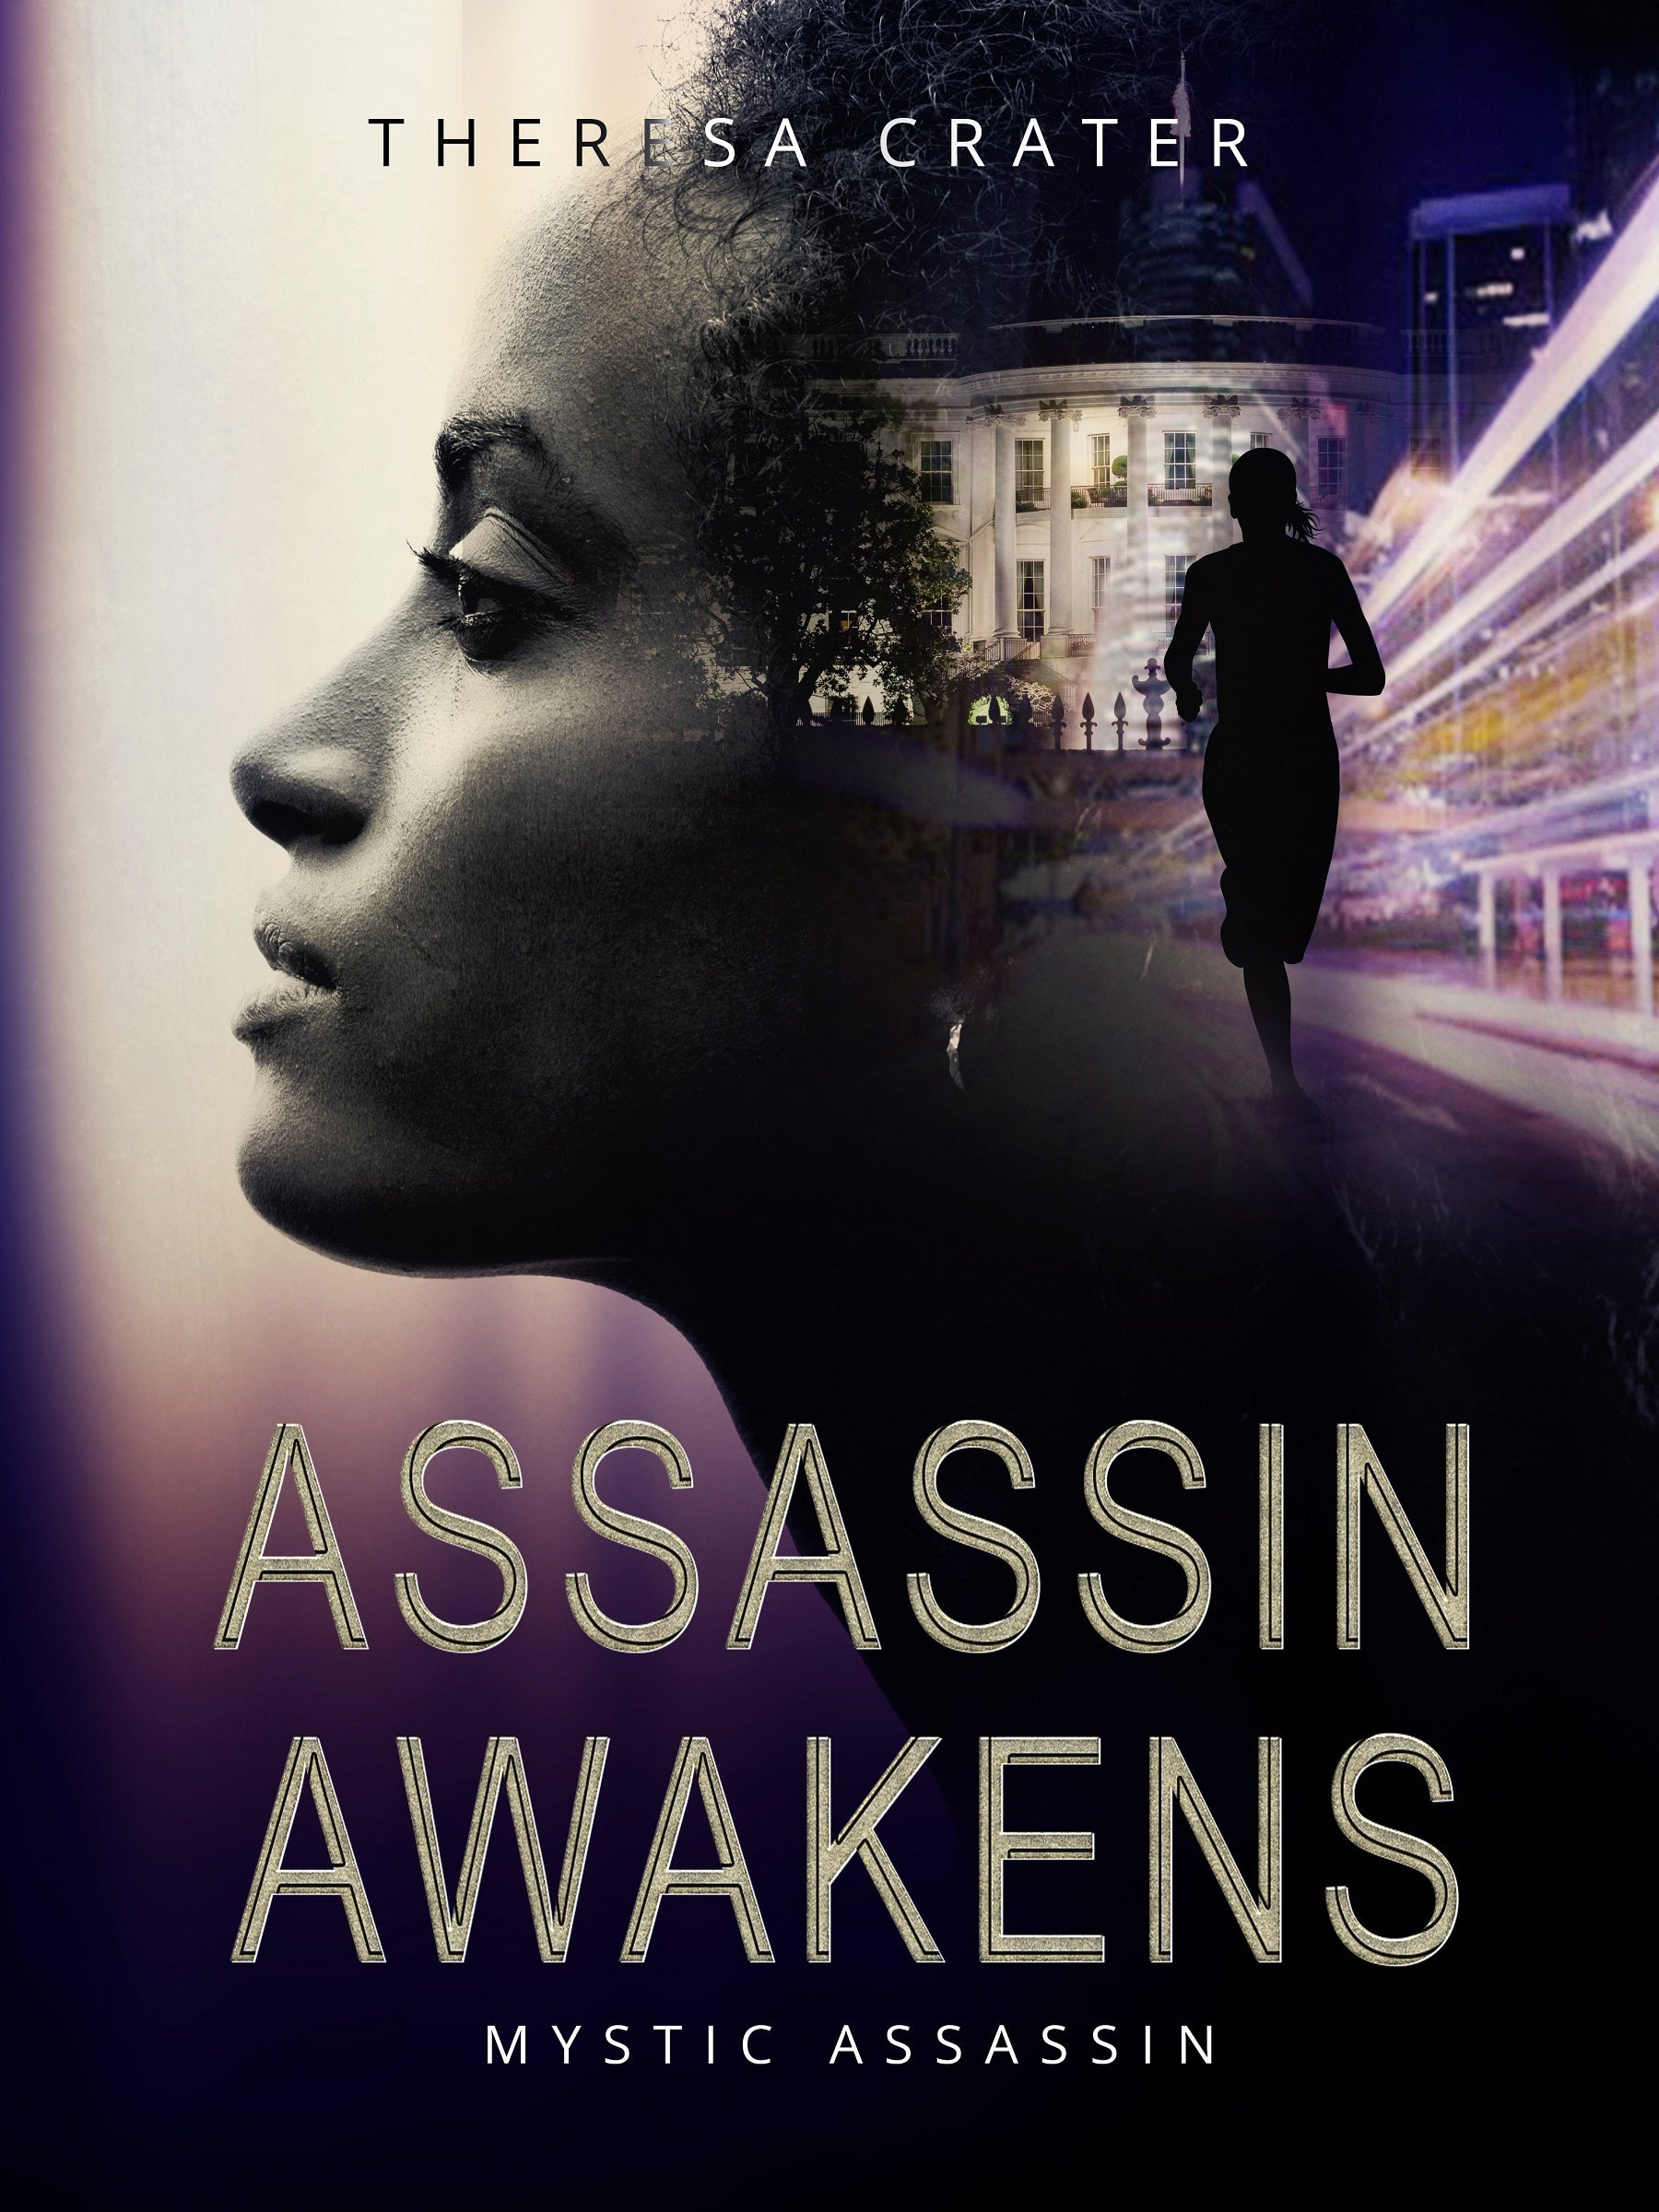 Assassin Awakens